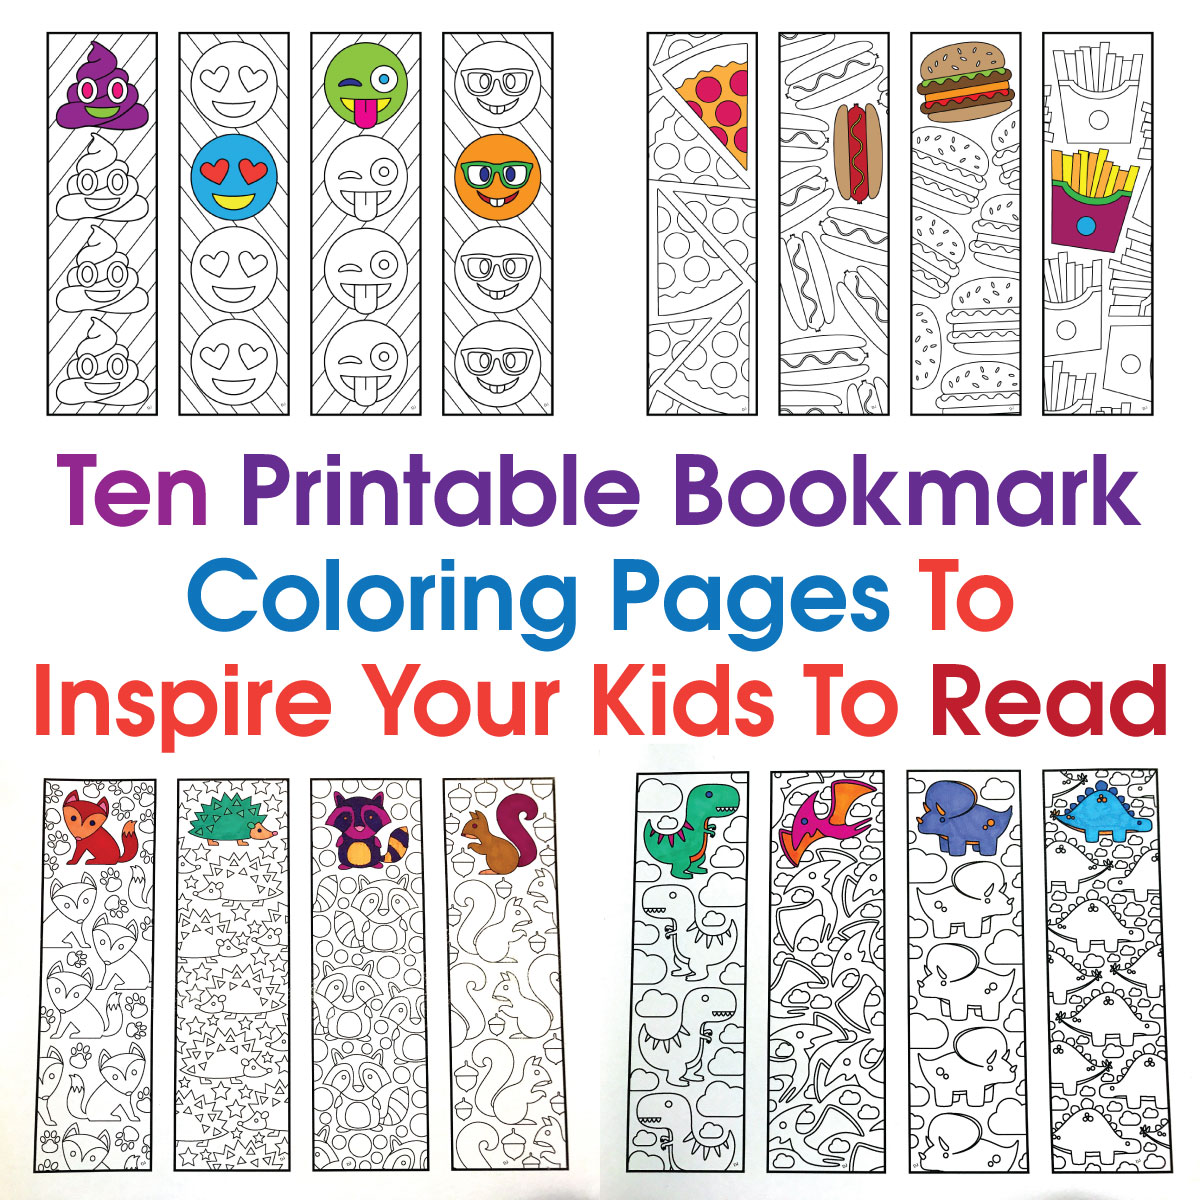 graphic regarding Printable Bookmarks for Kids titled 10 Printable Bookmark Coloring Webpages In the direction of Stimulate Your Children